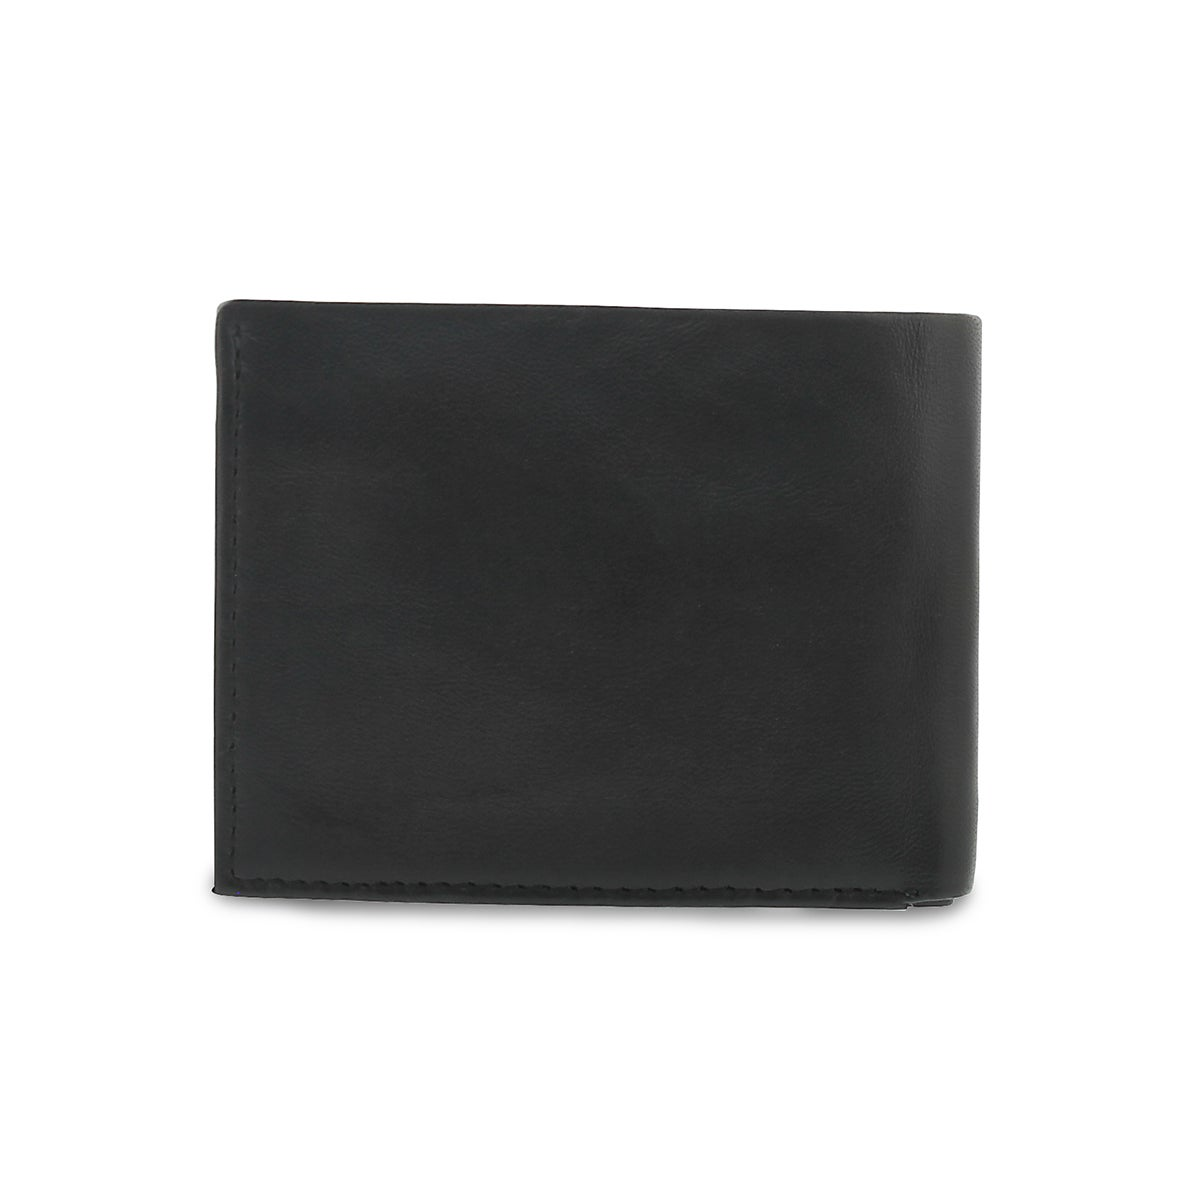 Mns black billfold coin pocket wallet